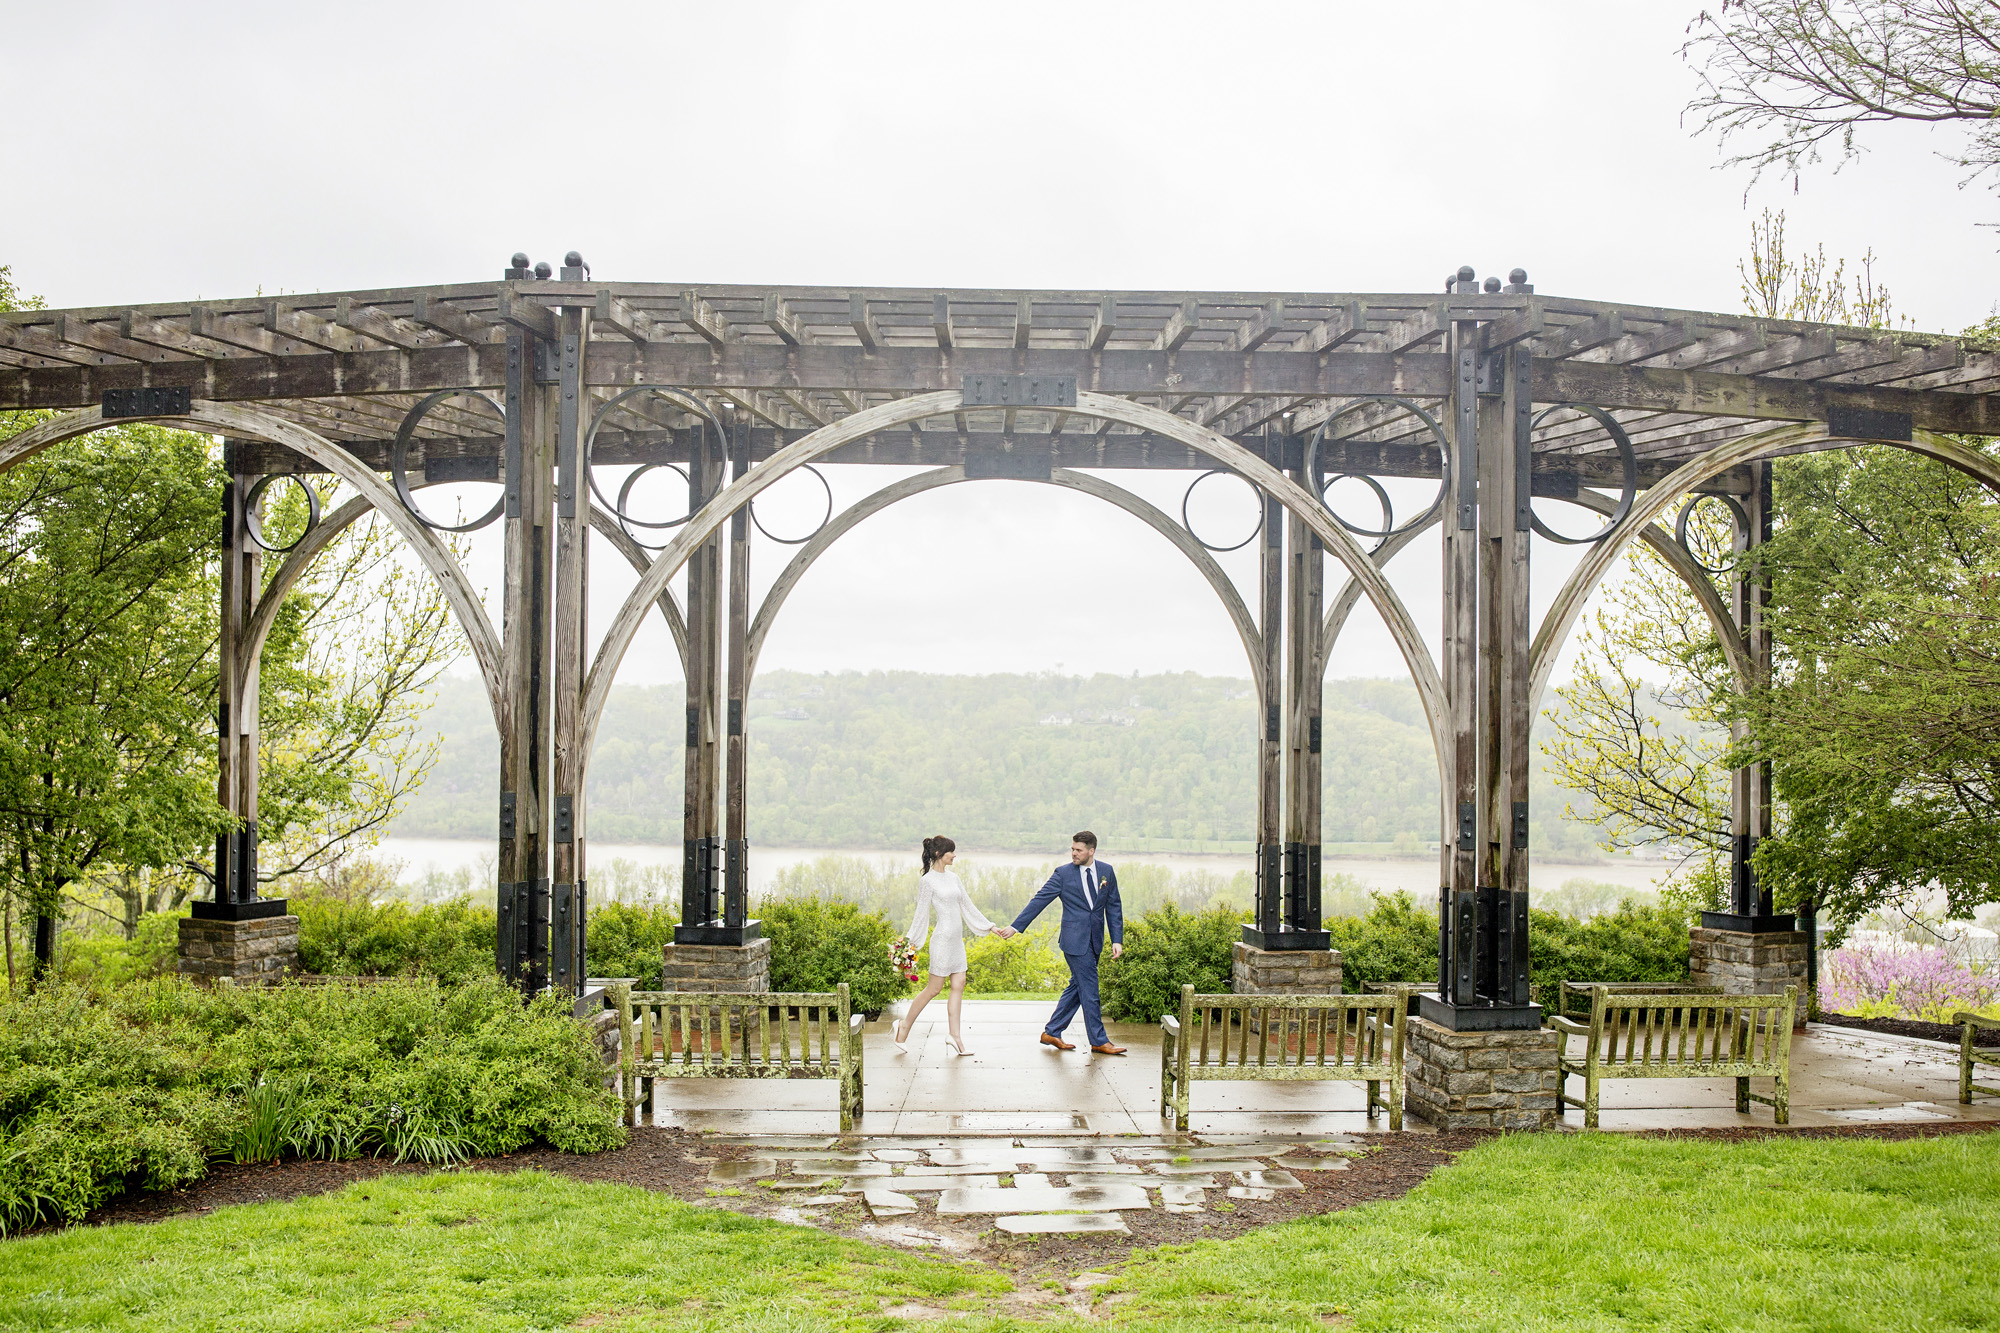 Seriously_Sabrina_Photography_Cincinnati_Ohio_Alms_Park_Elopement_Lauren_Aaron_47.jpg